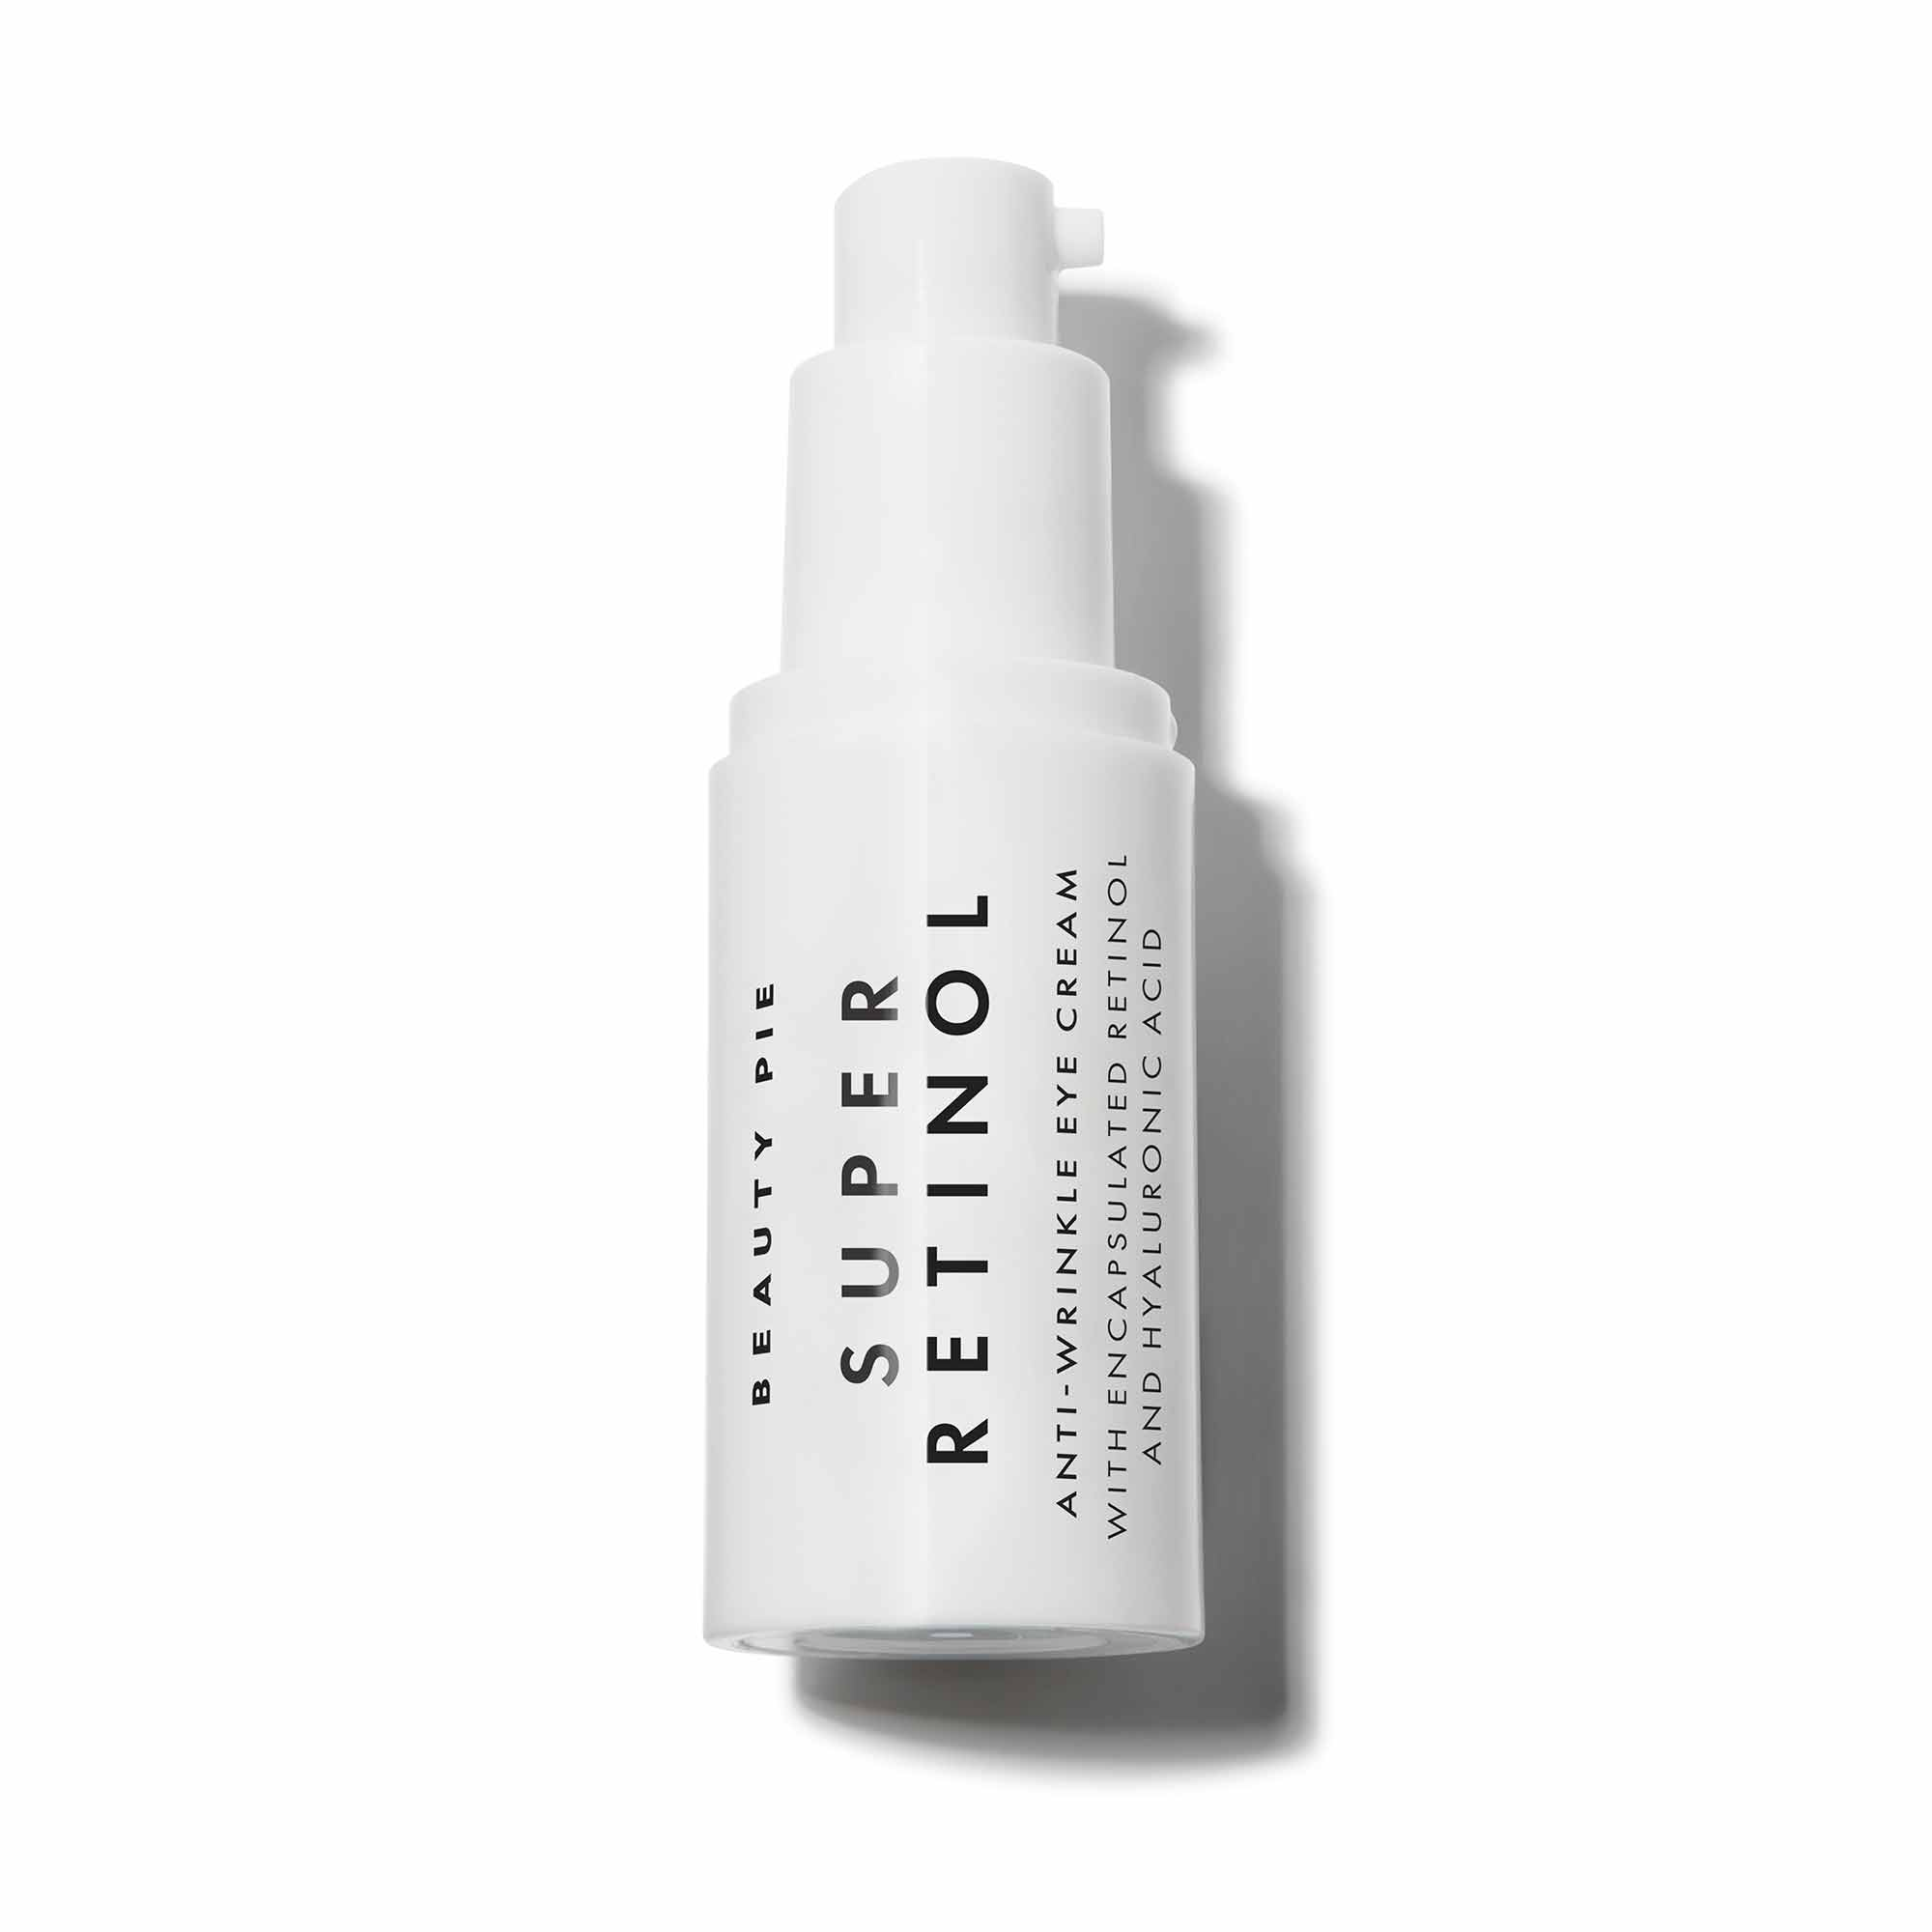 Super Retinol Anti-Wrinkle Eye Cream by Beauty Pie